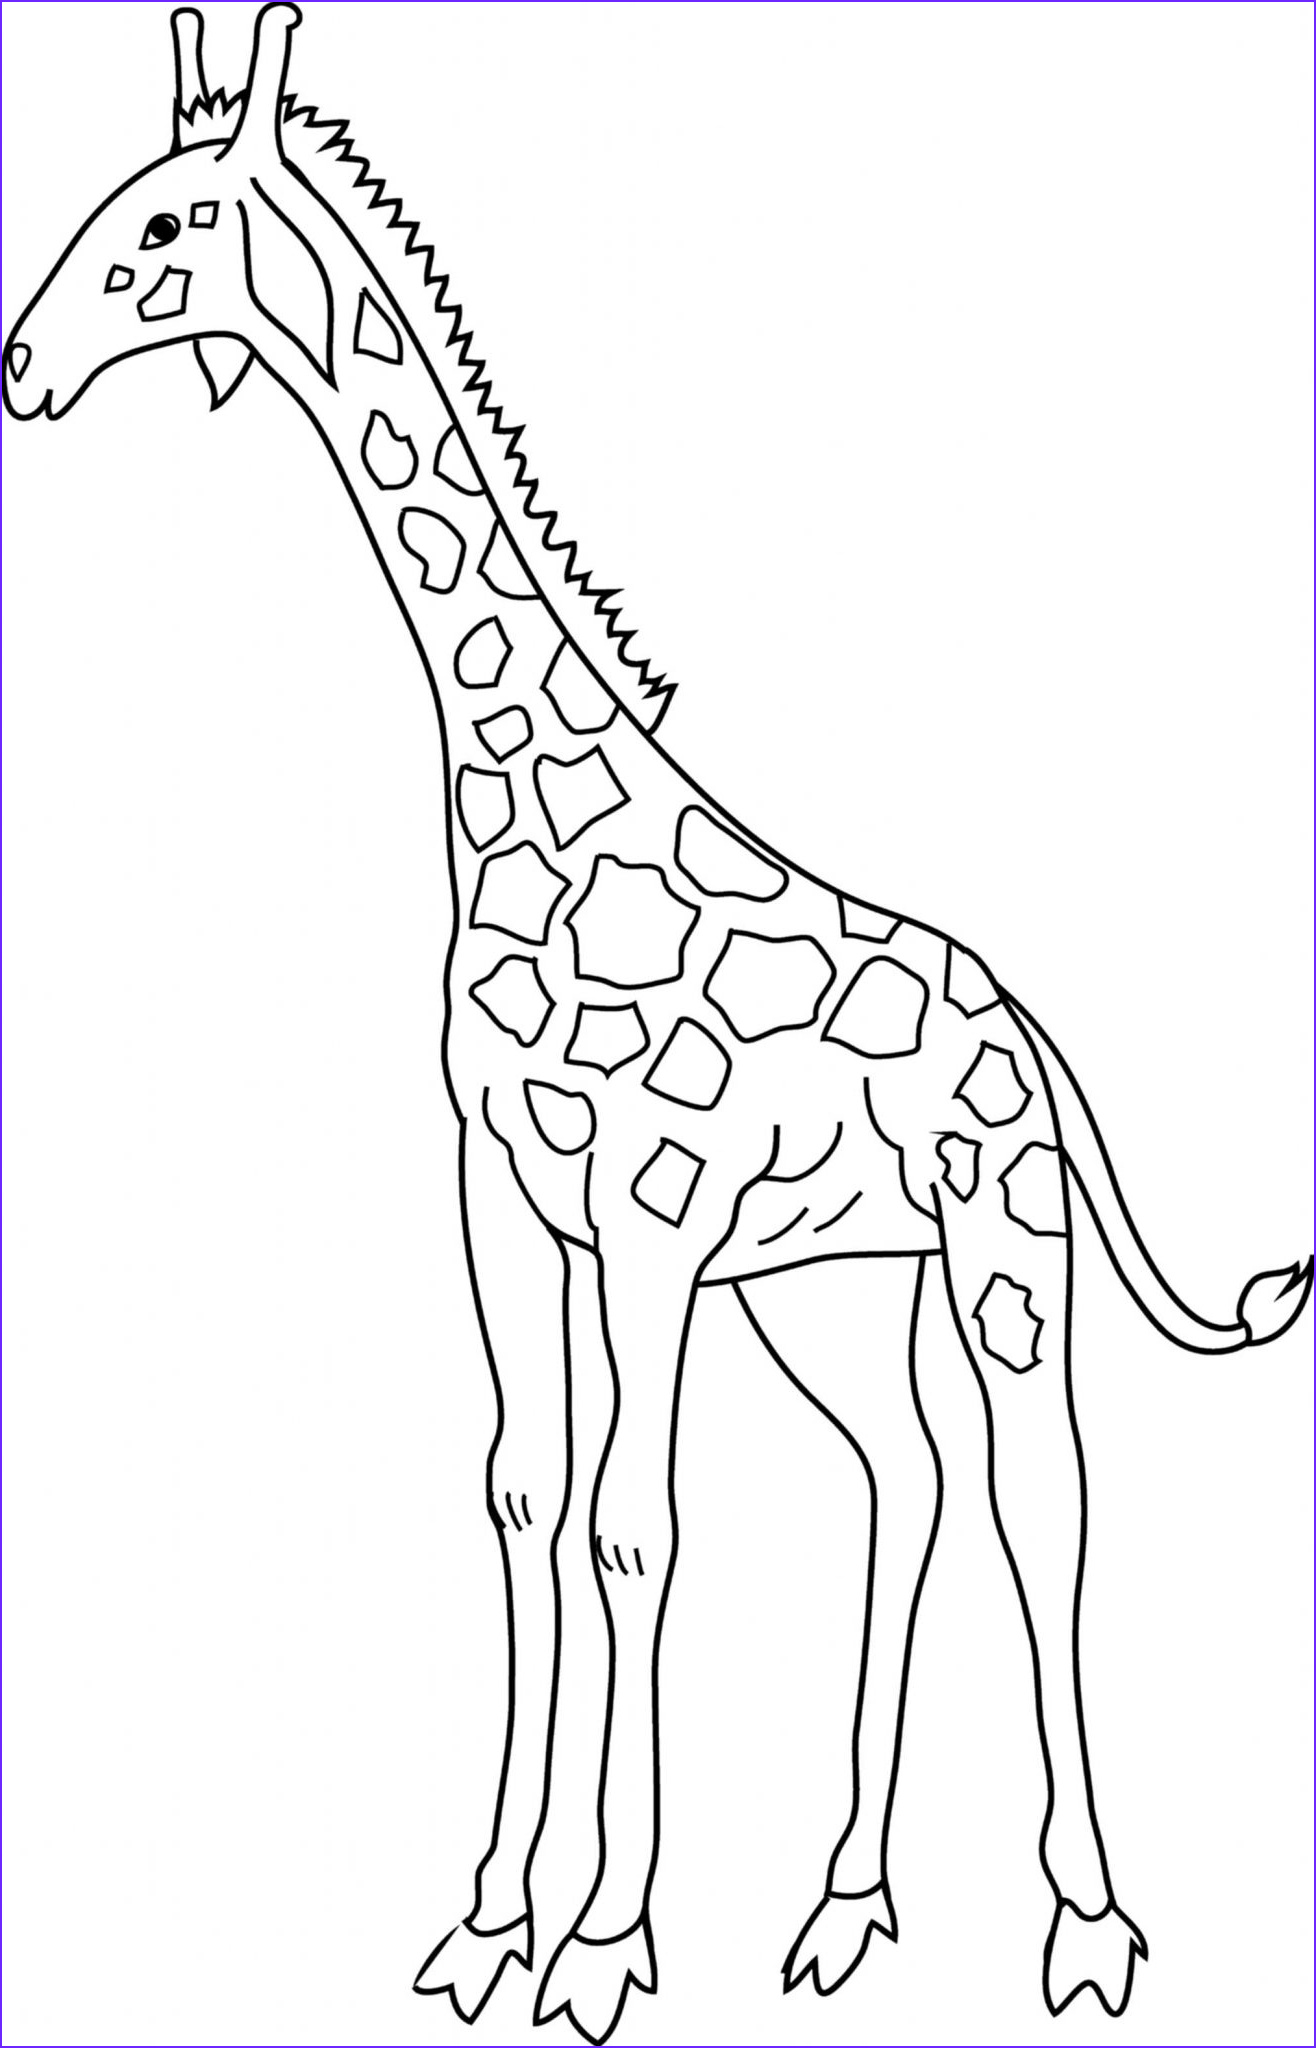 Giraffes Coloring Pages Beautiful Images Giraffe Coloring Pages for Kids to Have Fun – Best Apps